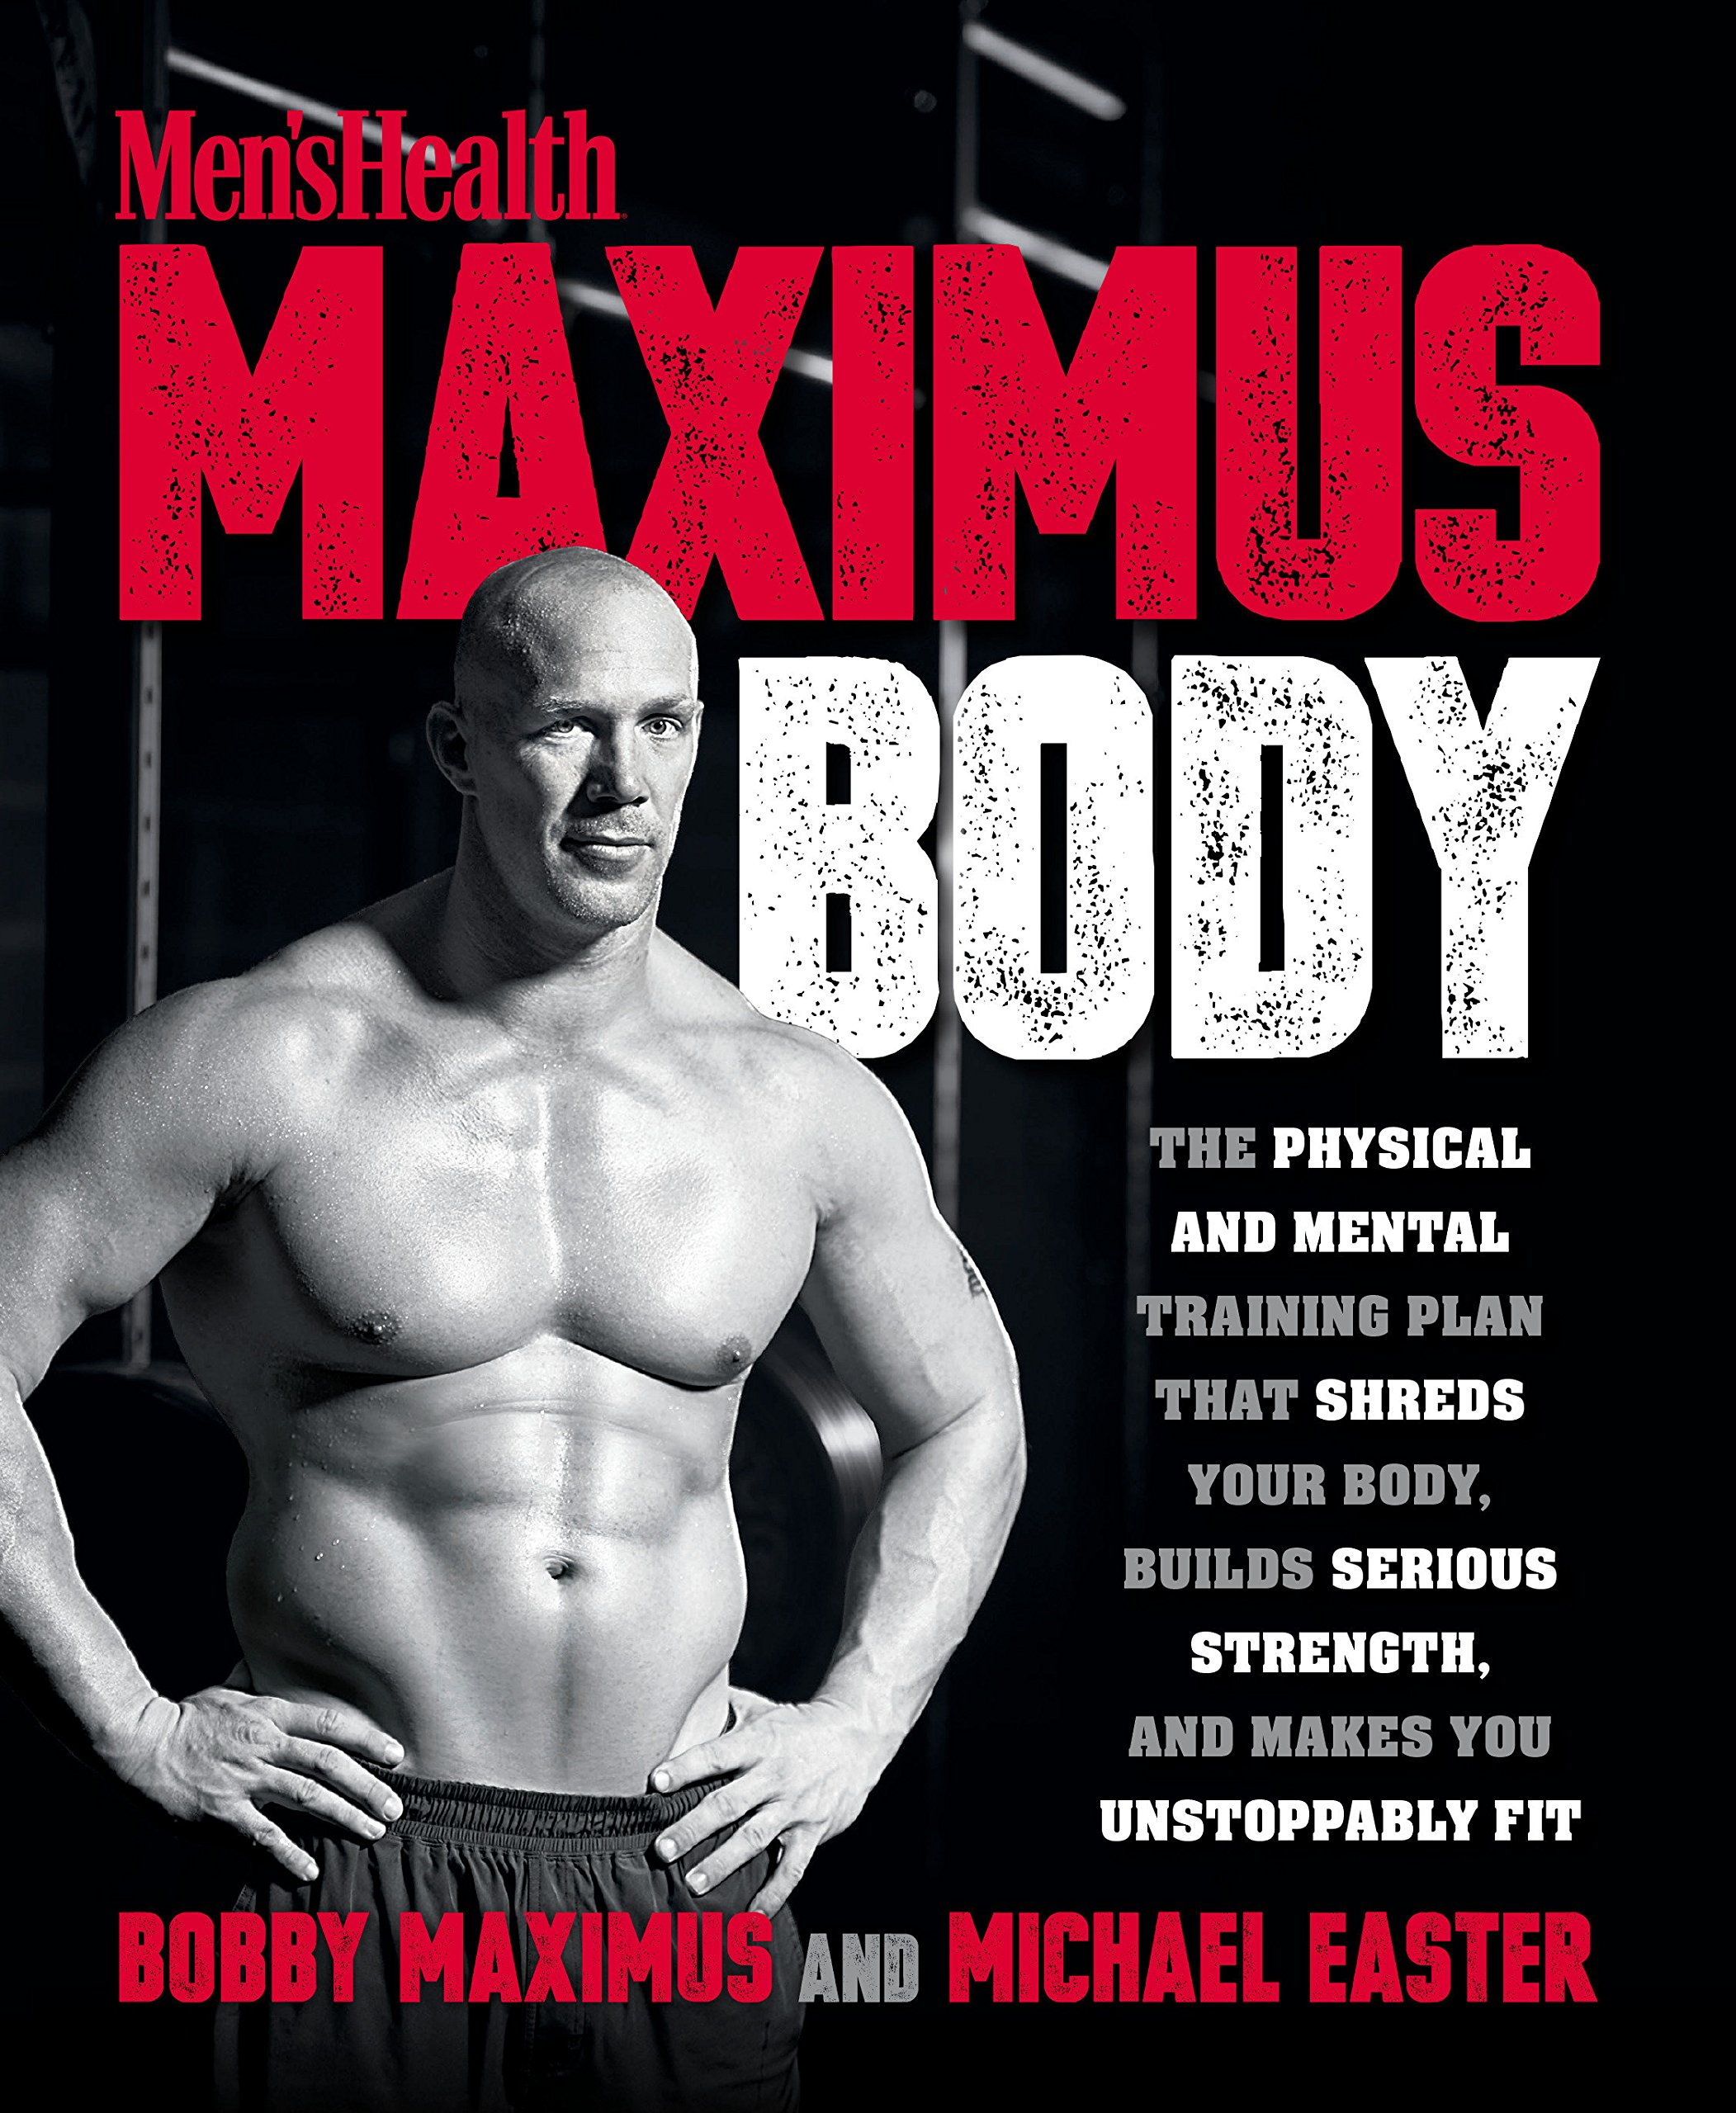 Maximus Body The Physical And Mental Training Plan That Shreds Your